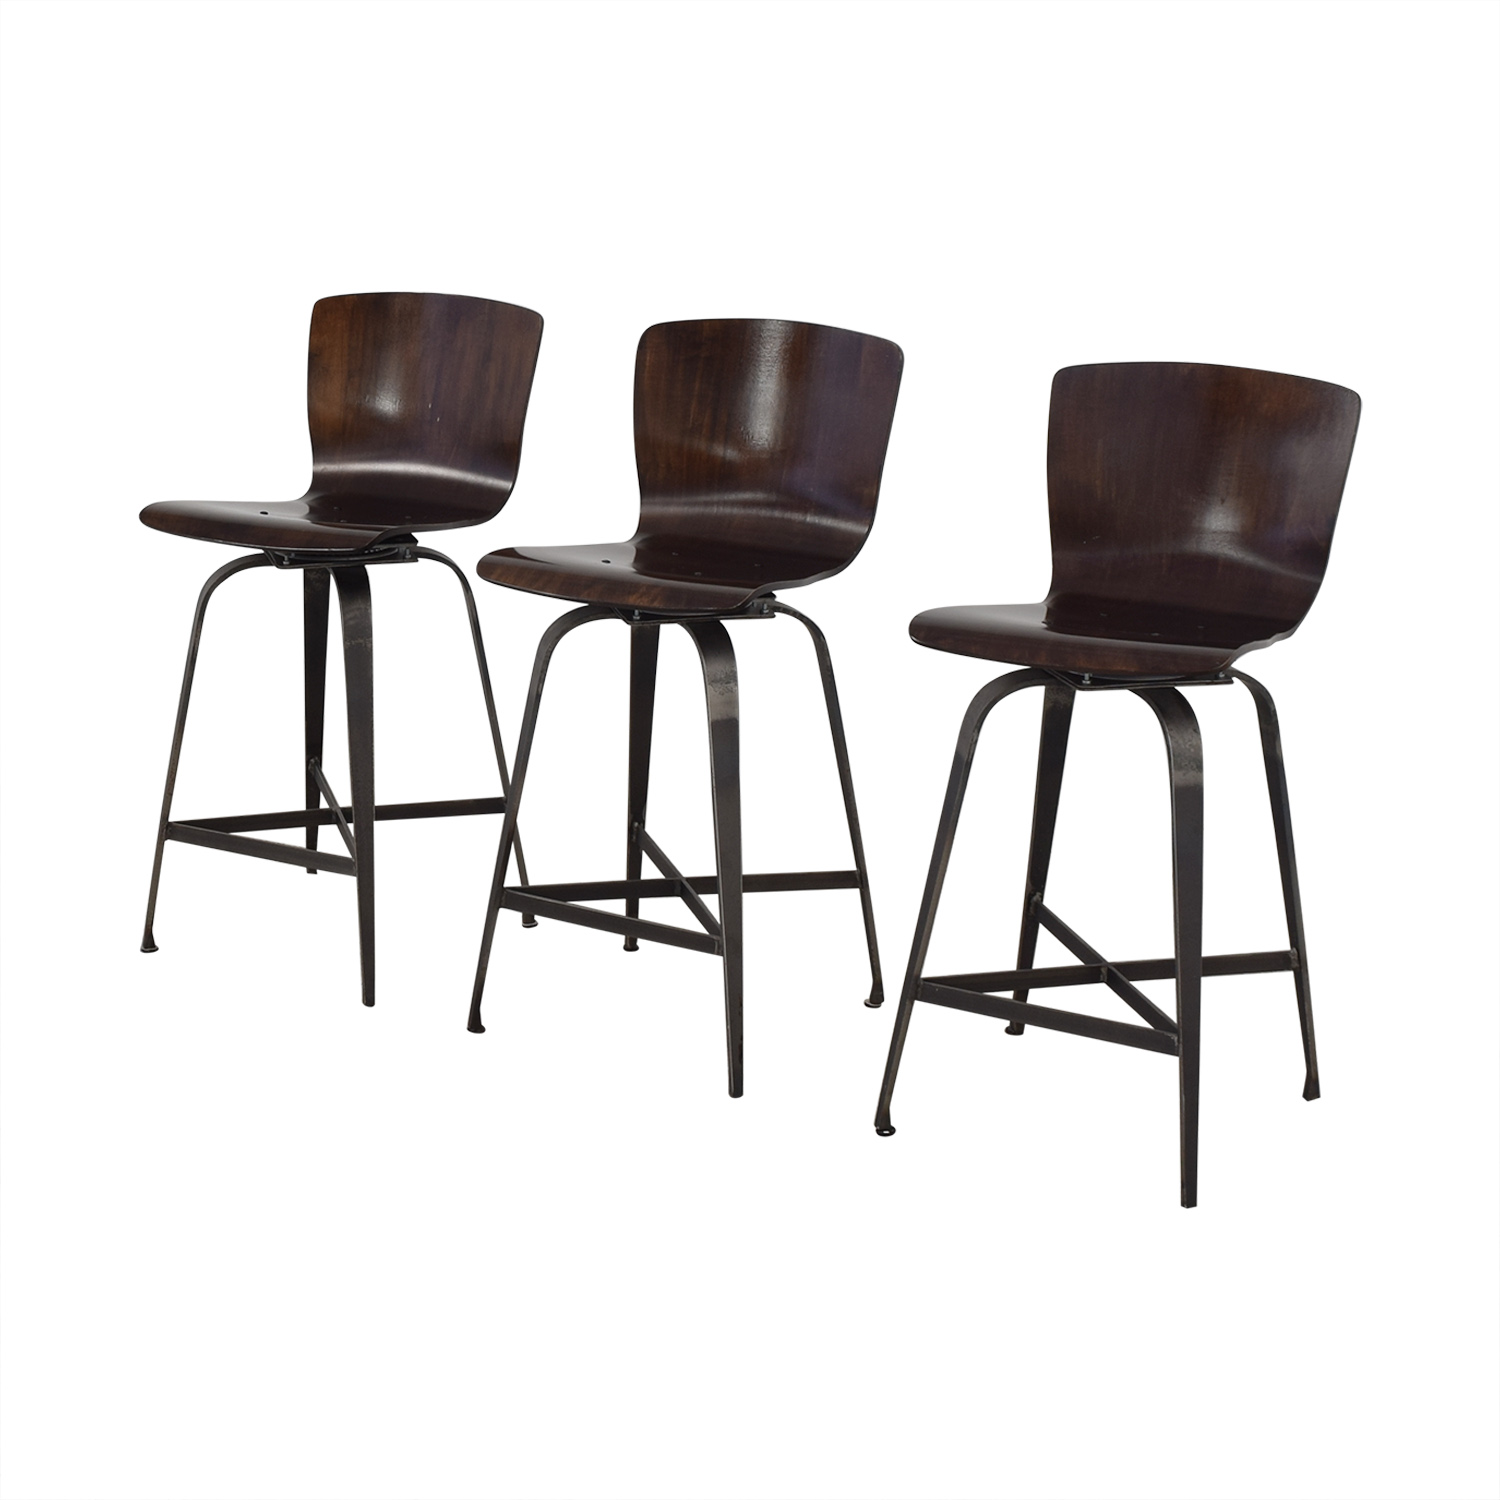 Charleston Forge Fresno Swivel Counterstools / Chairs